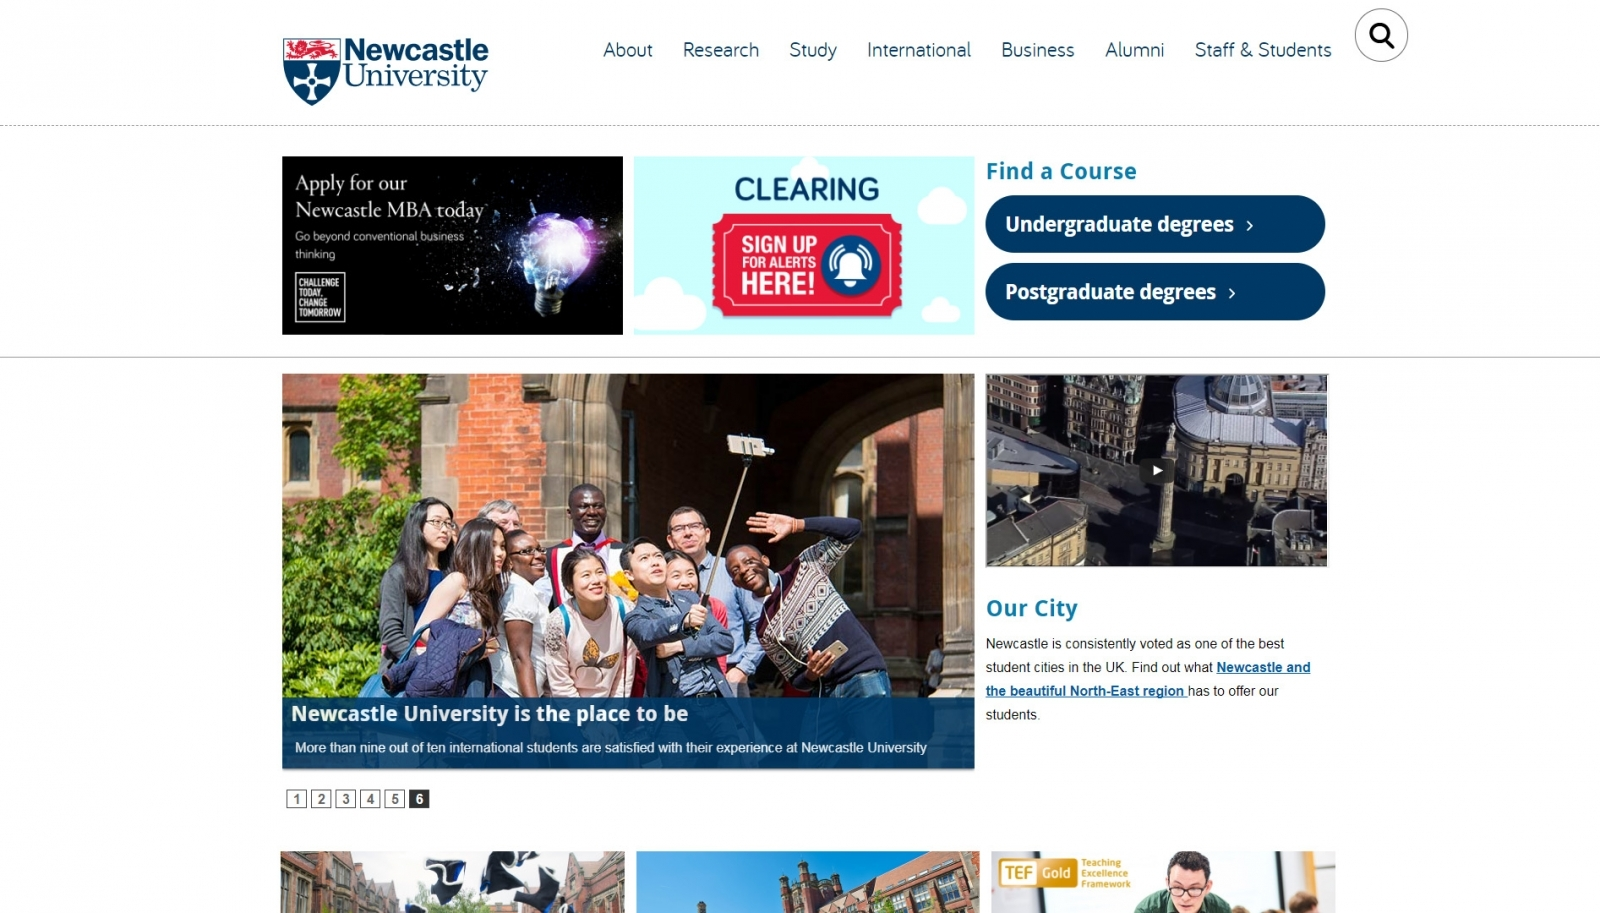 The real Newcastle University website